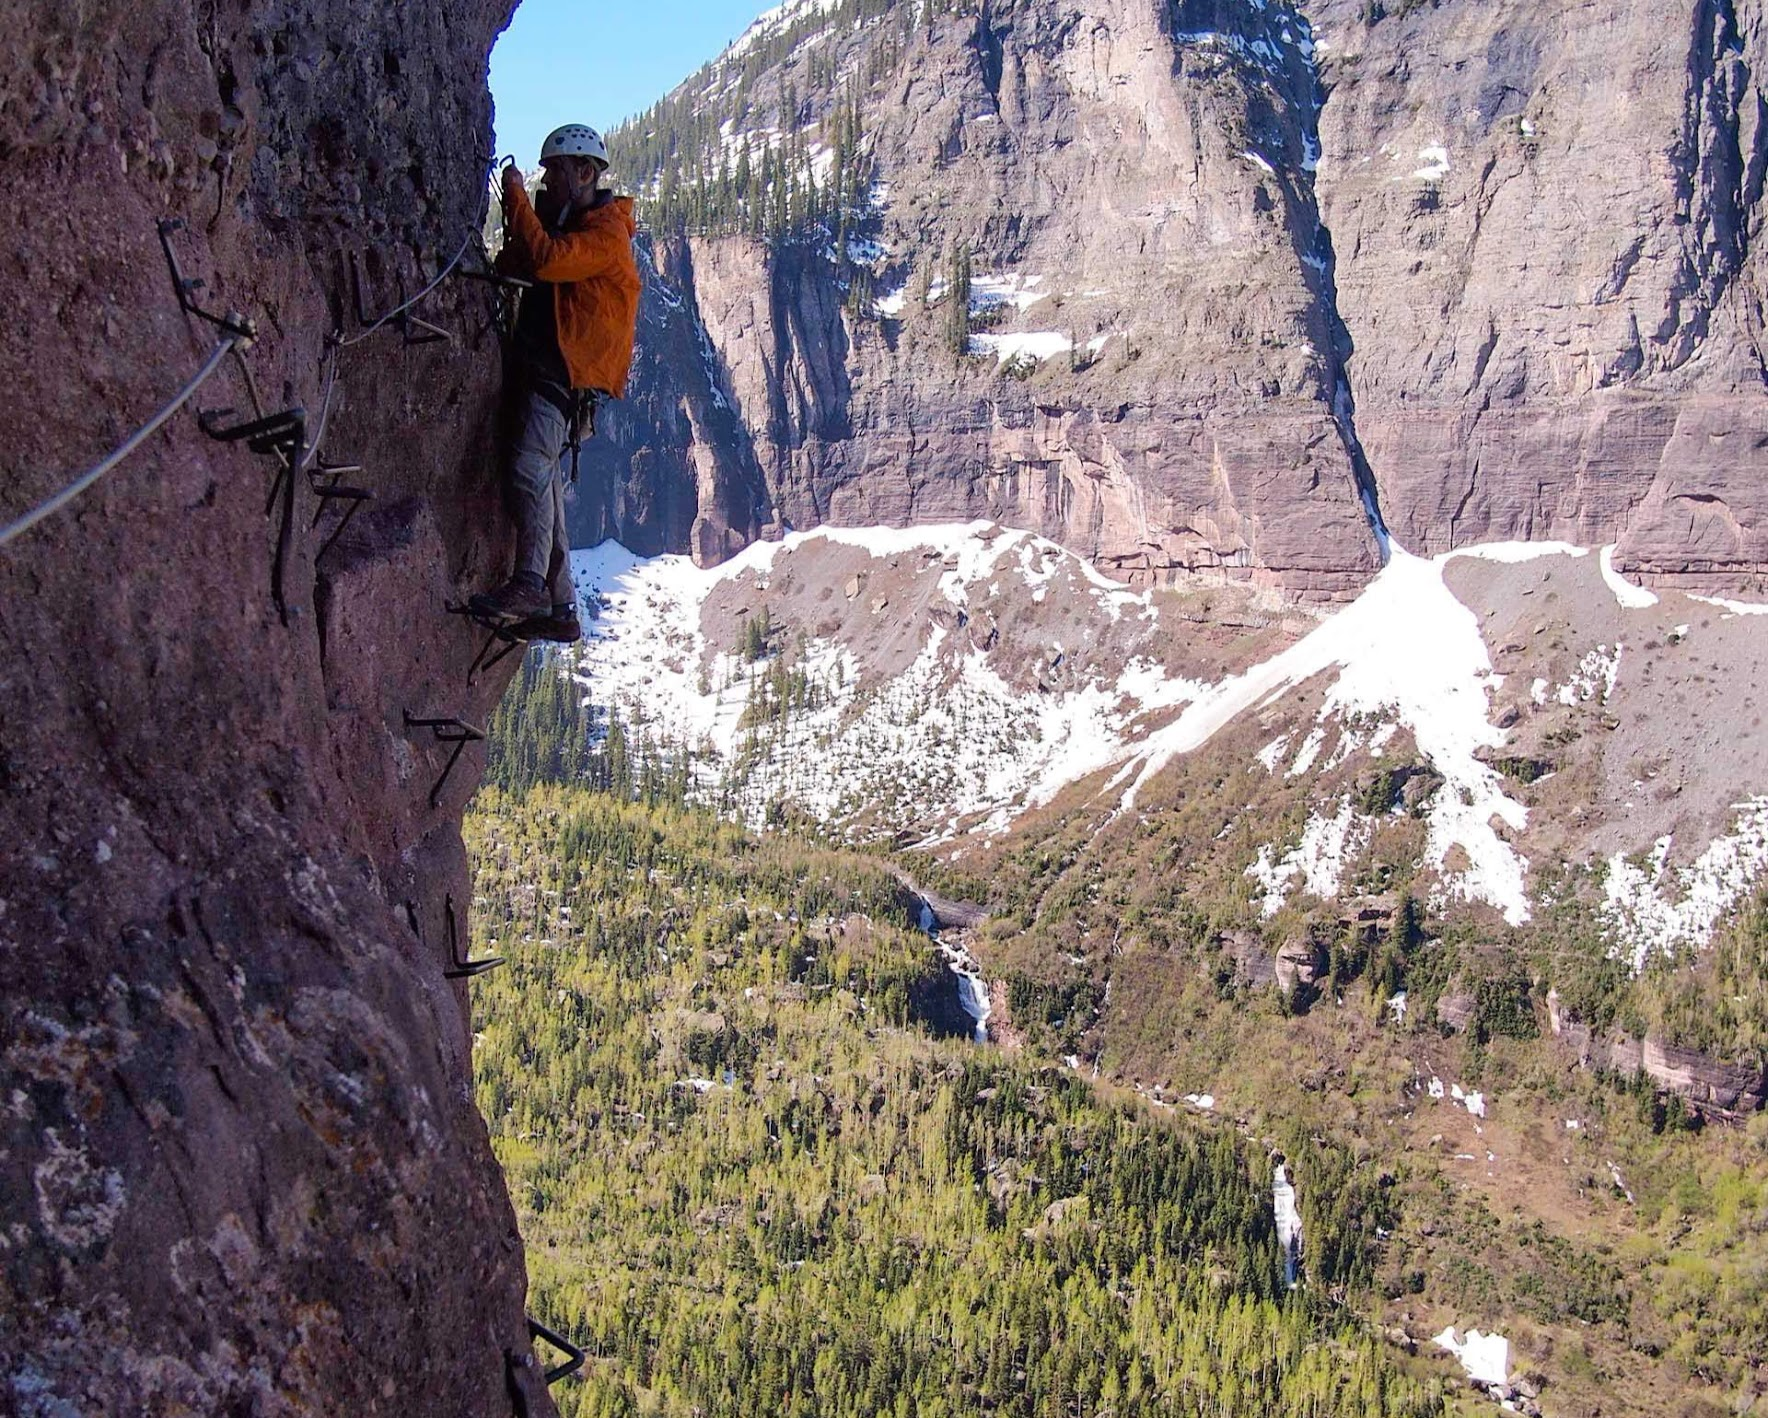 A climber in the middle of a via ferrata route above a tree-covered valley